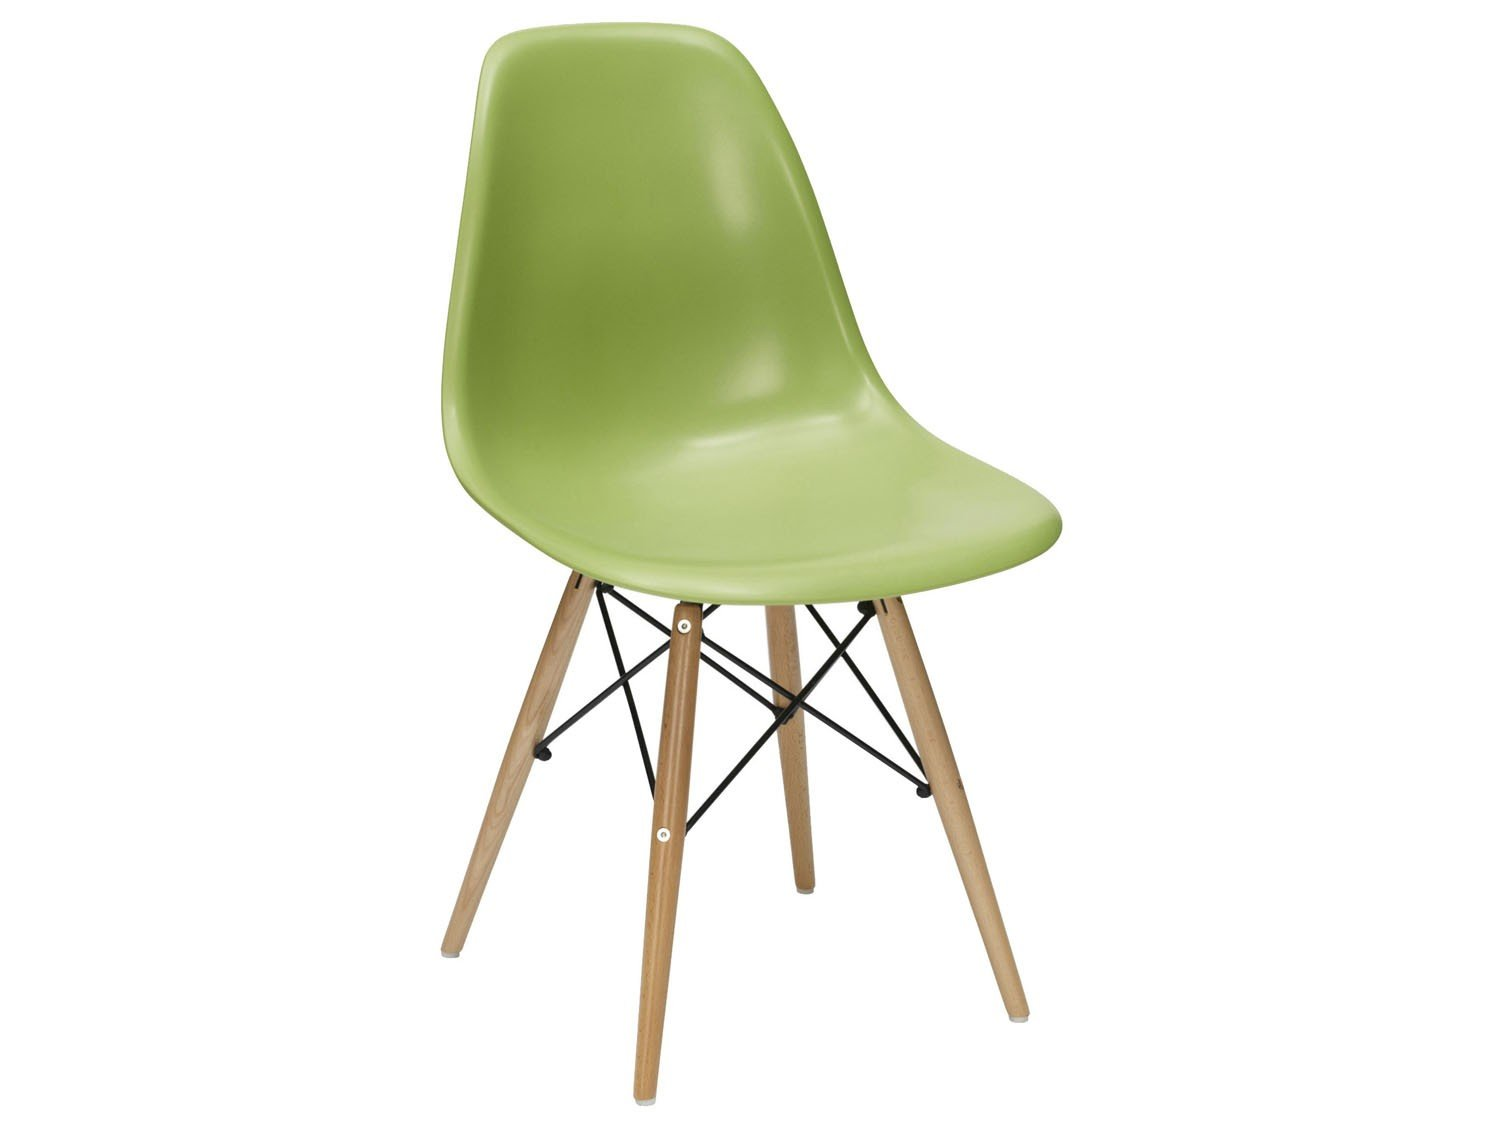 Cadeira decorativa eames or 1102b or design cadeiras for Vitra chair nachbau